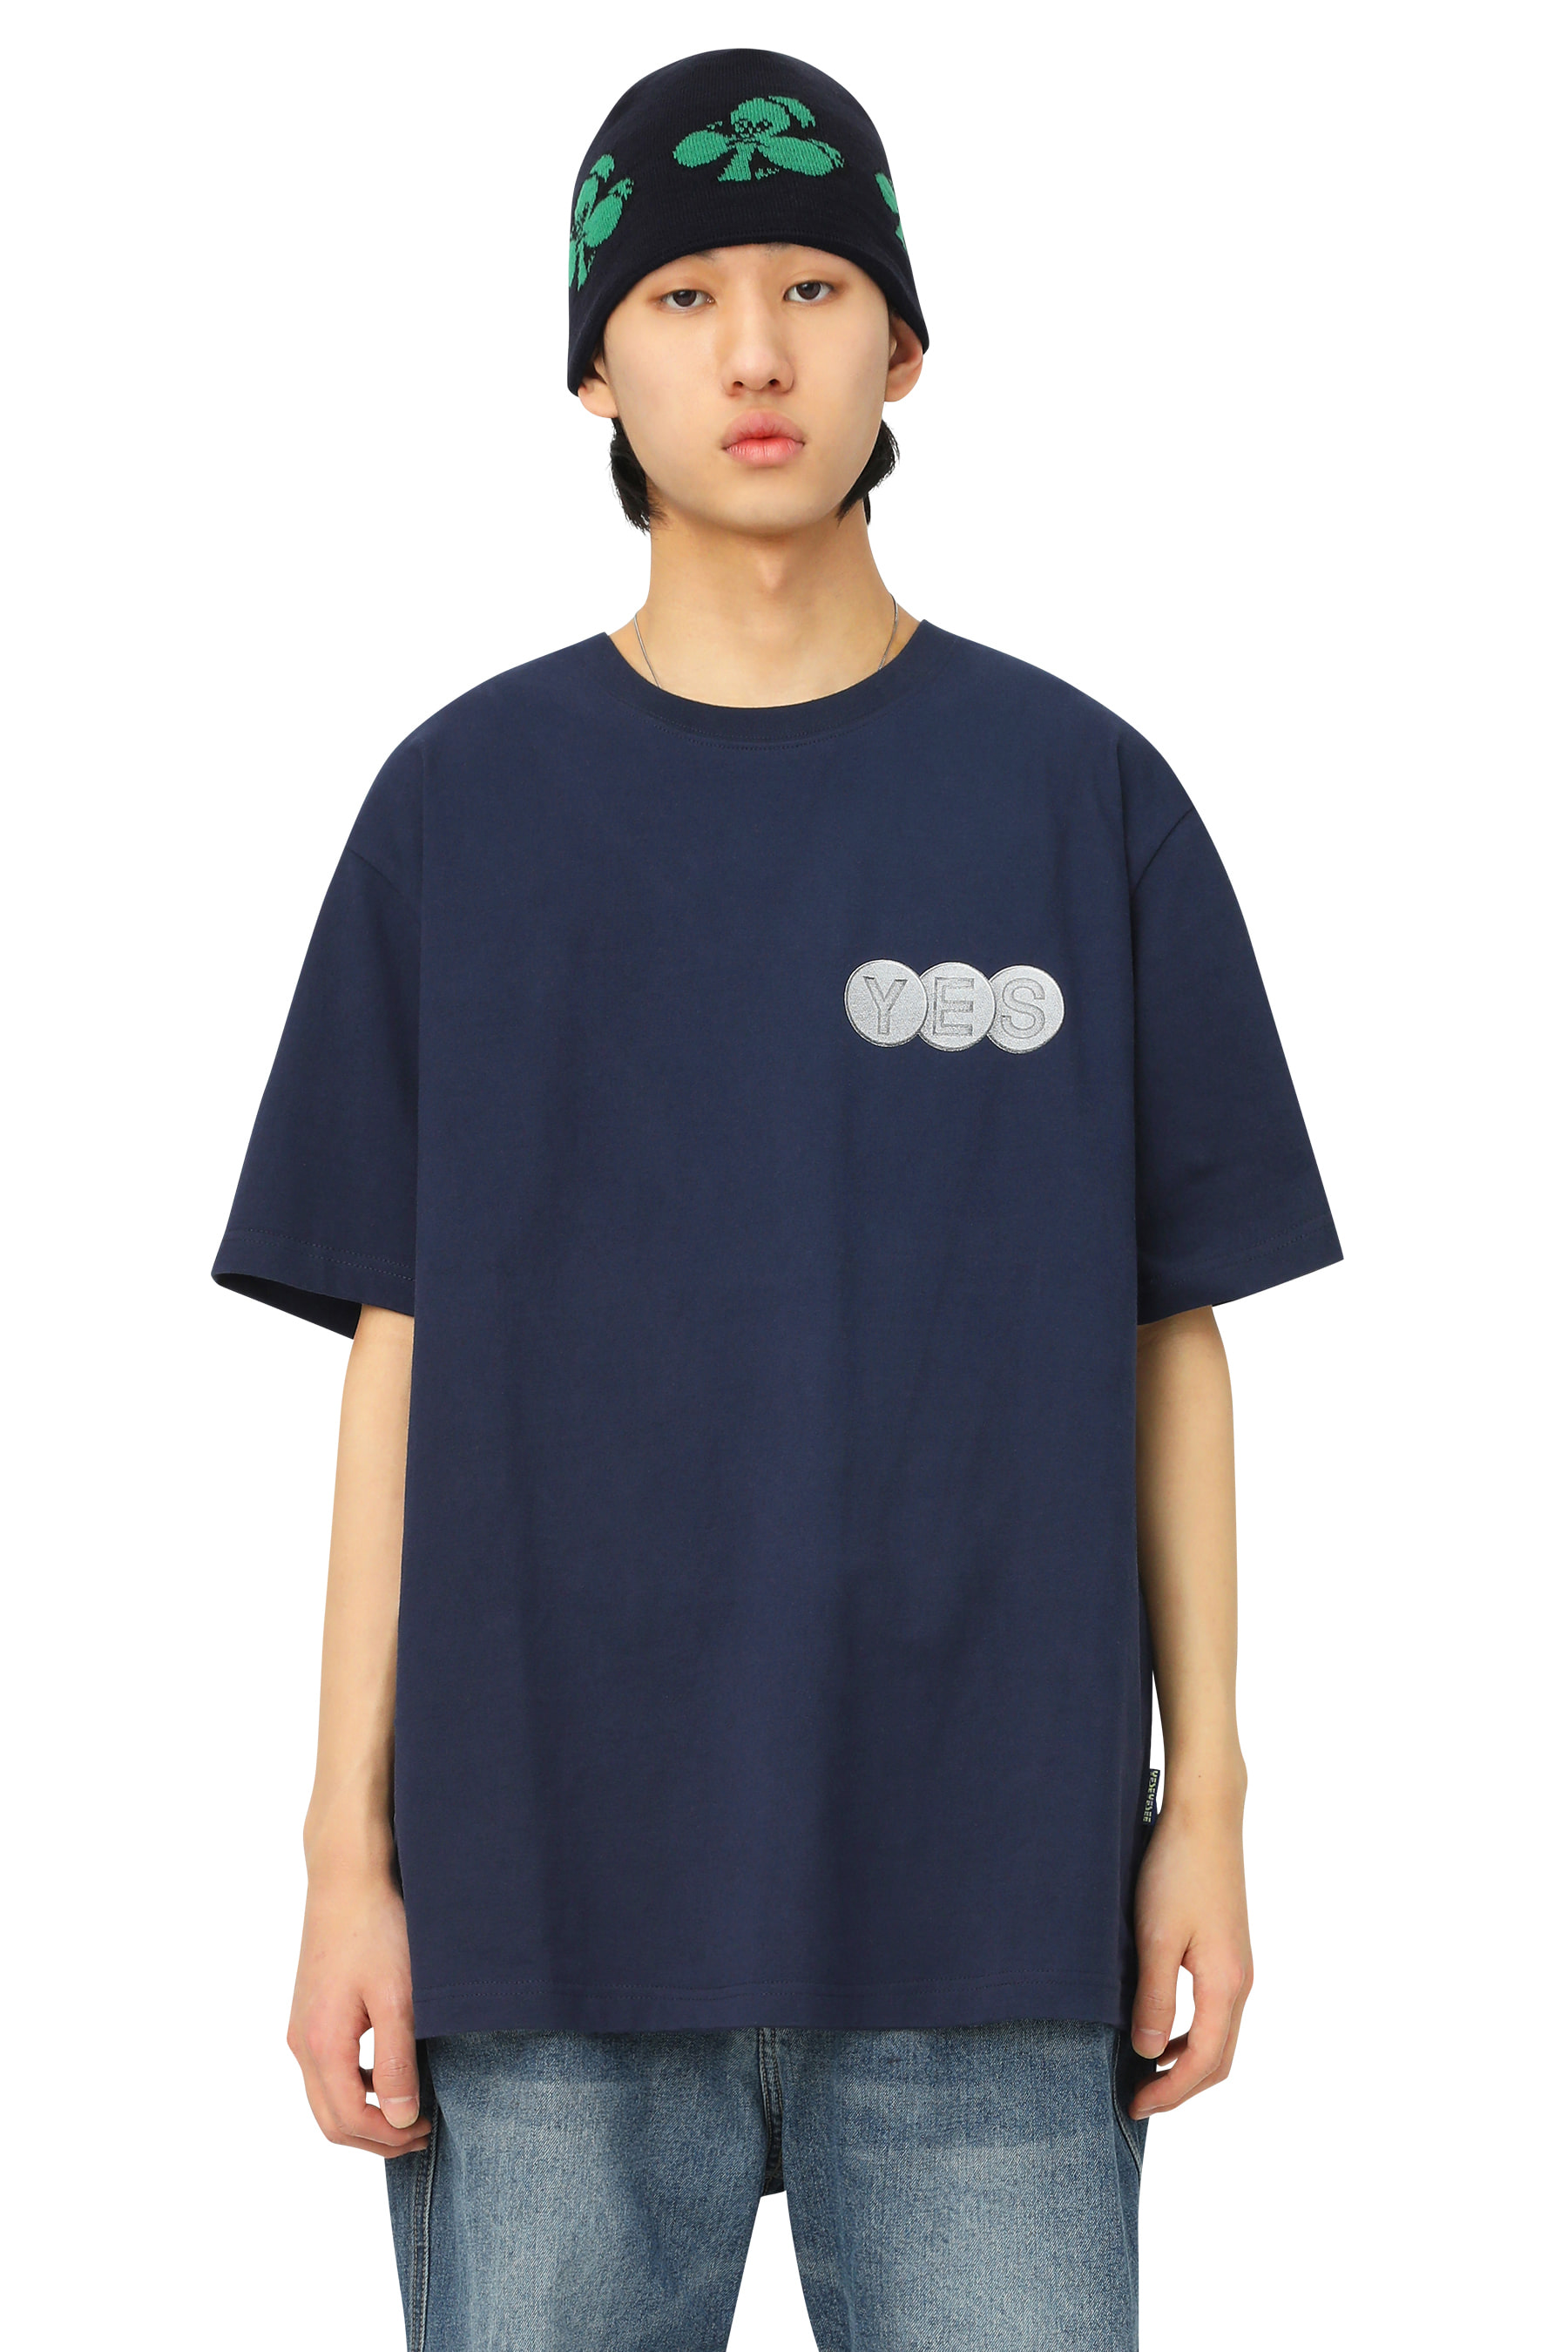 Y.E.S Screw Tee Navy